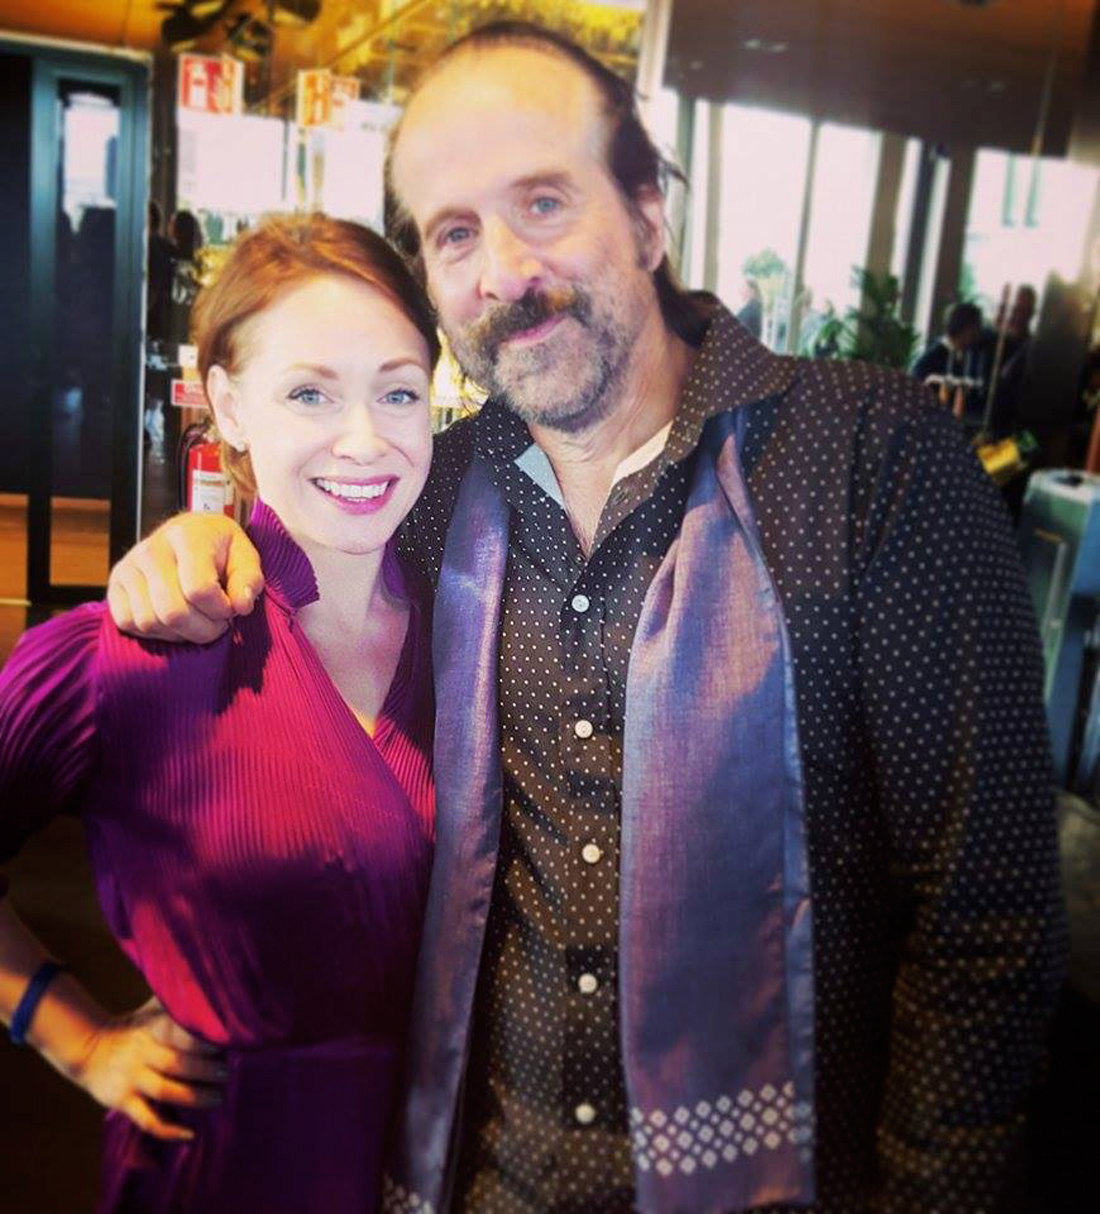 peter stormare tanja dyredand grandcentral mindfulness